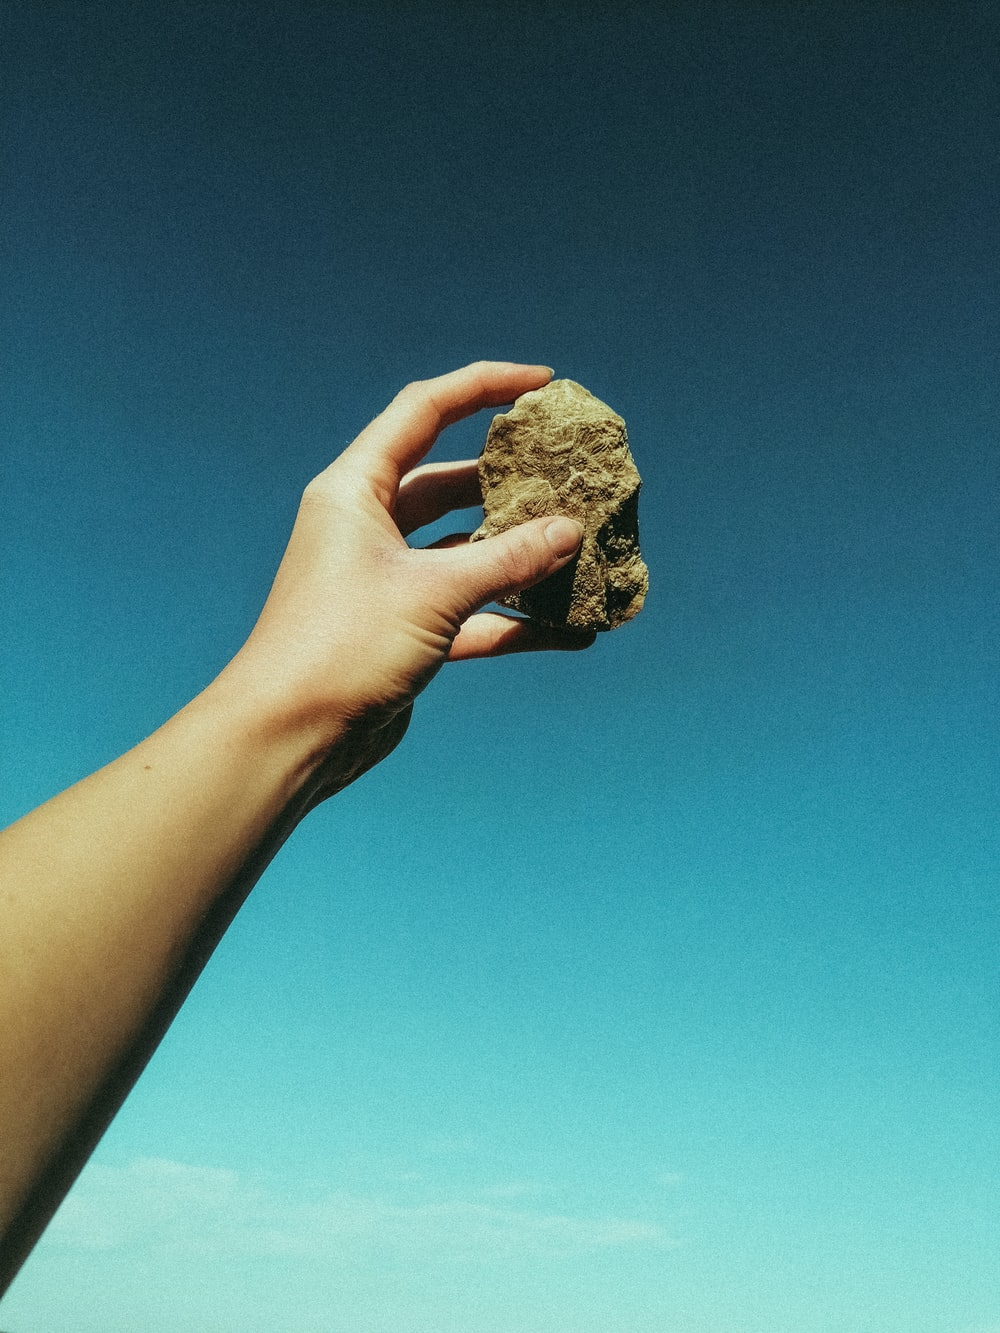 person holding brown rock under blue sky during daytime